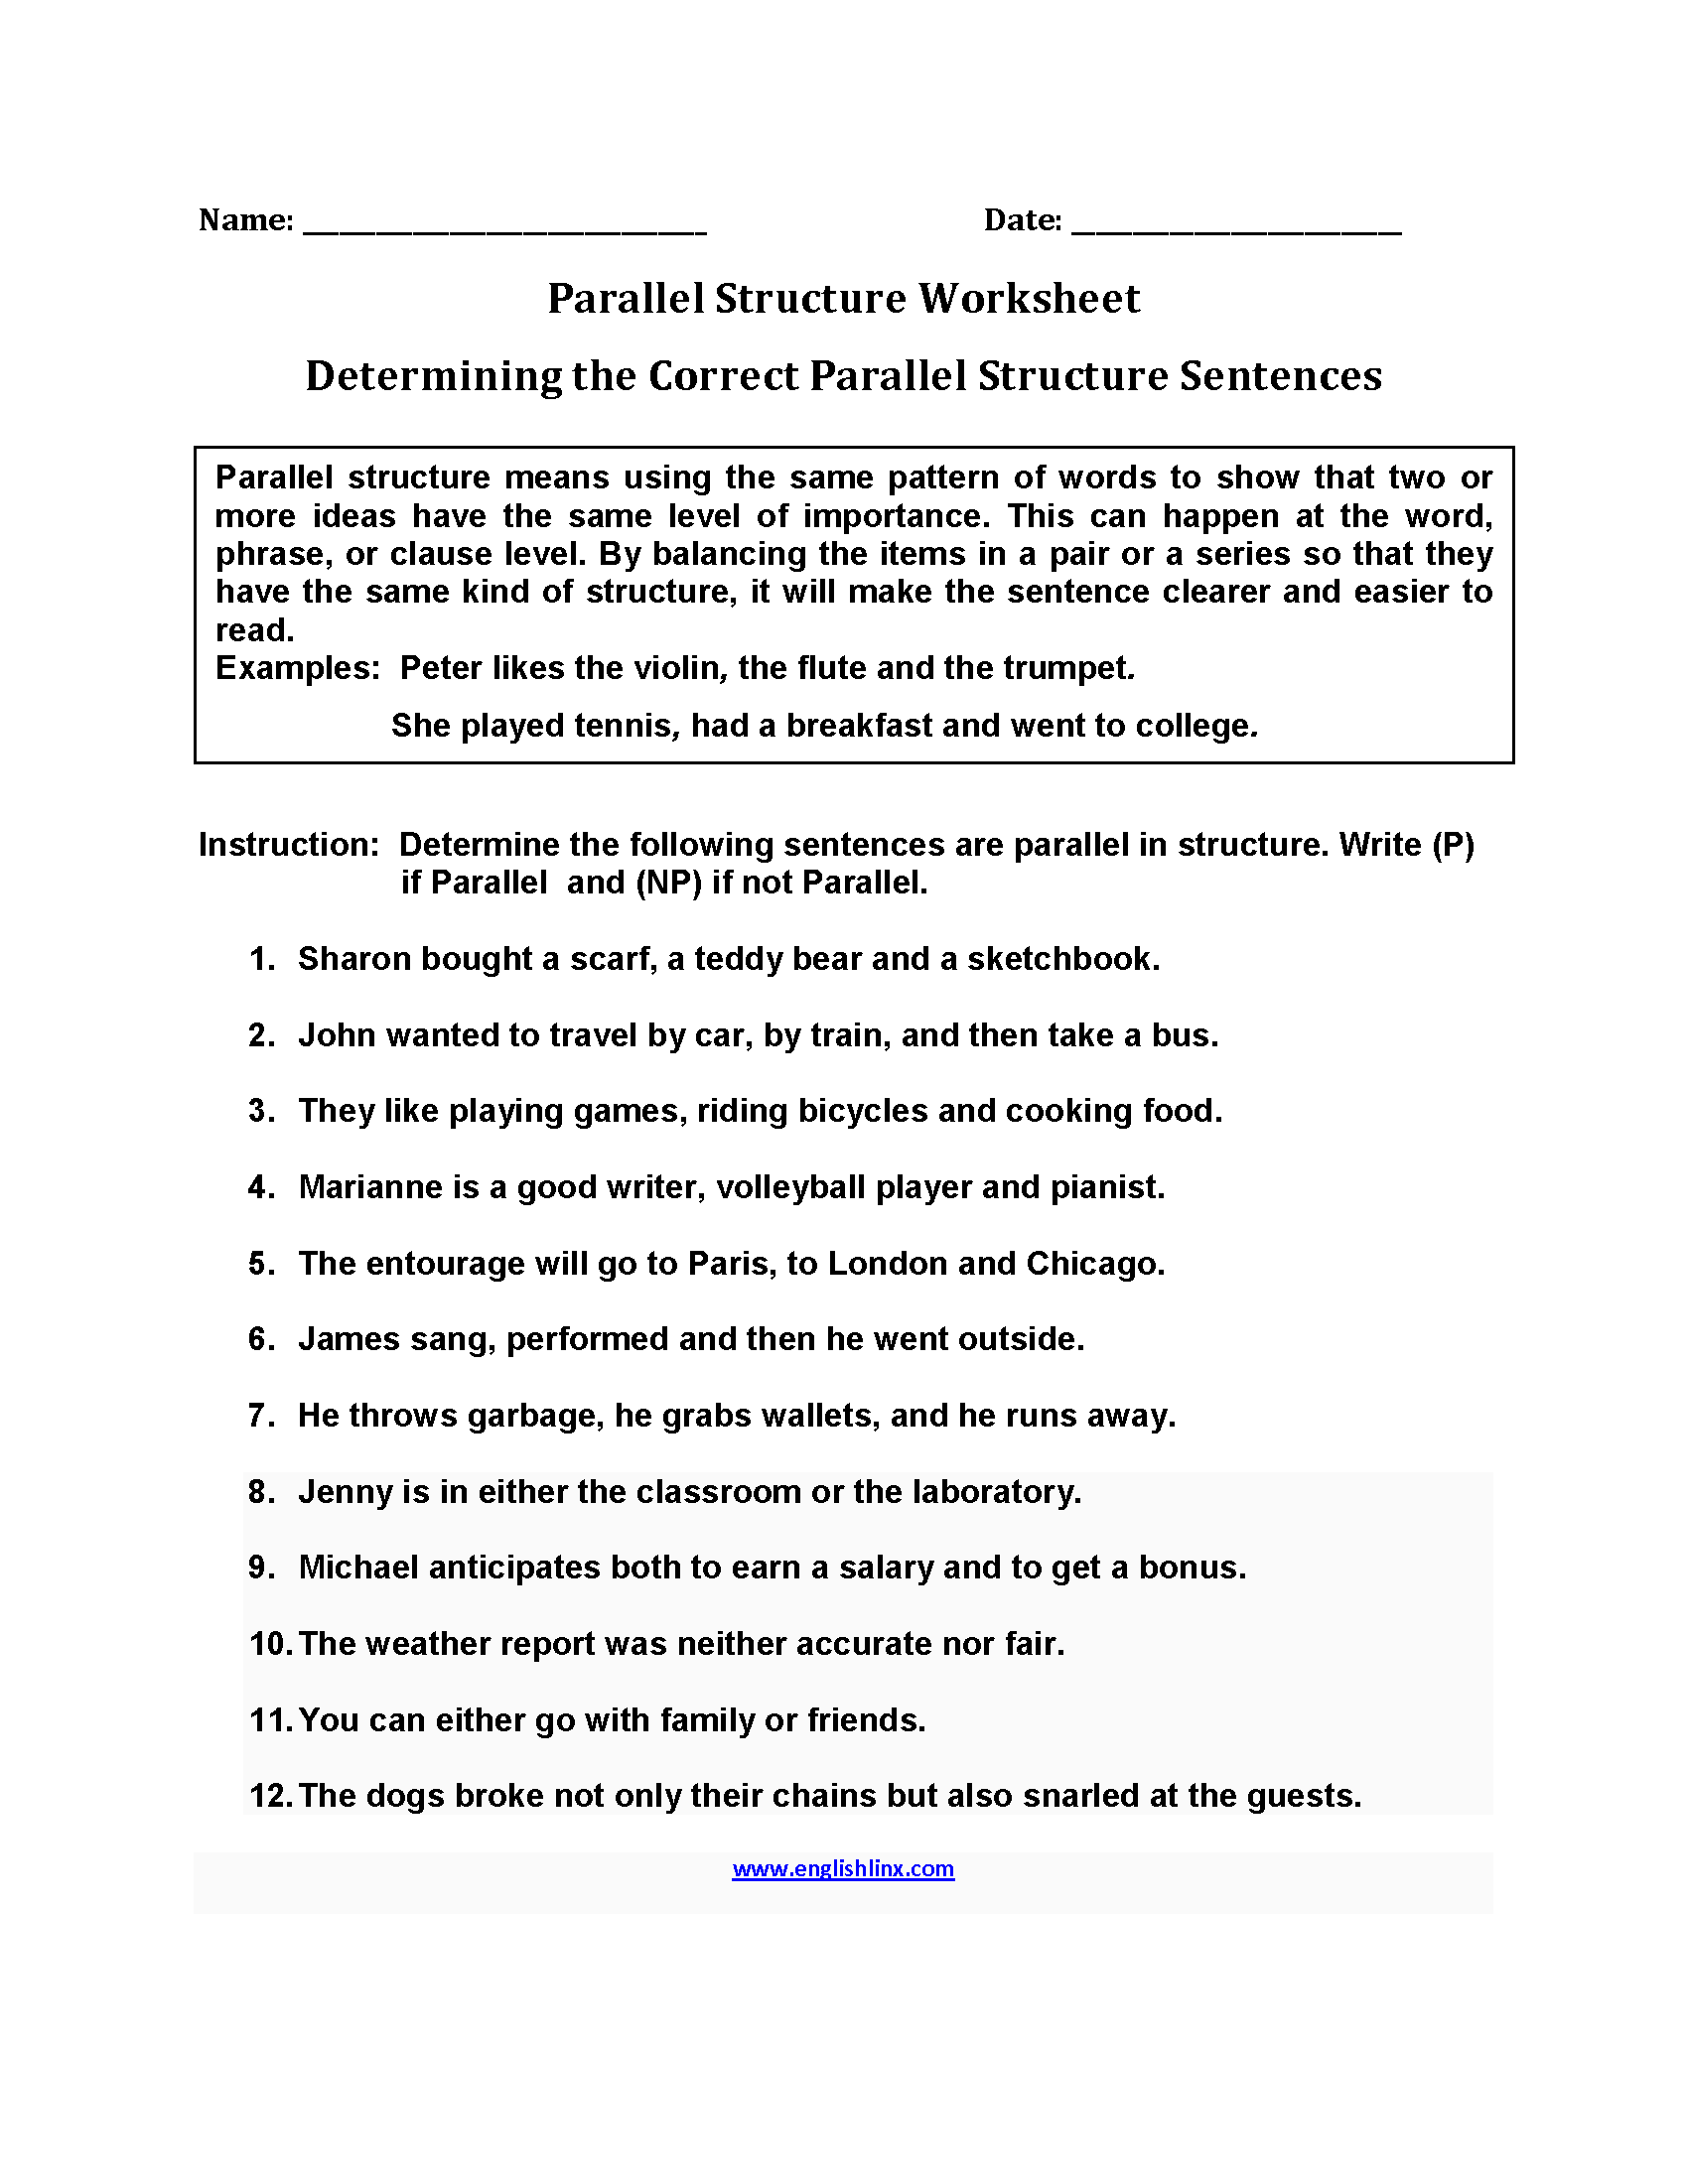 Determining Parallel Structure Worksheets | Englishlinx.com Board ...